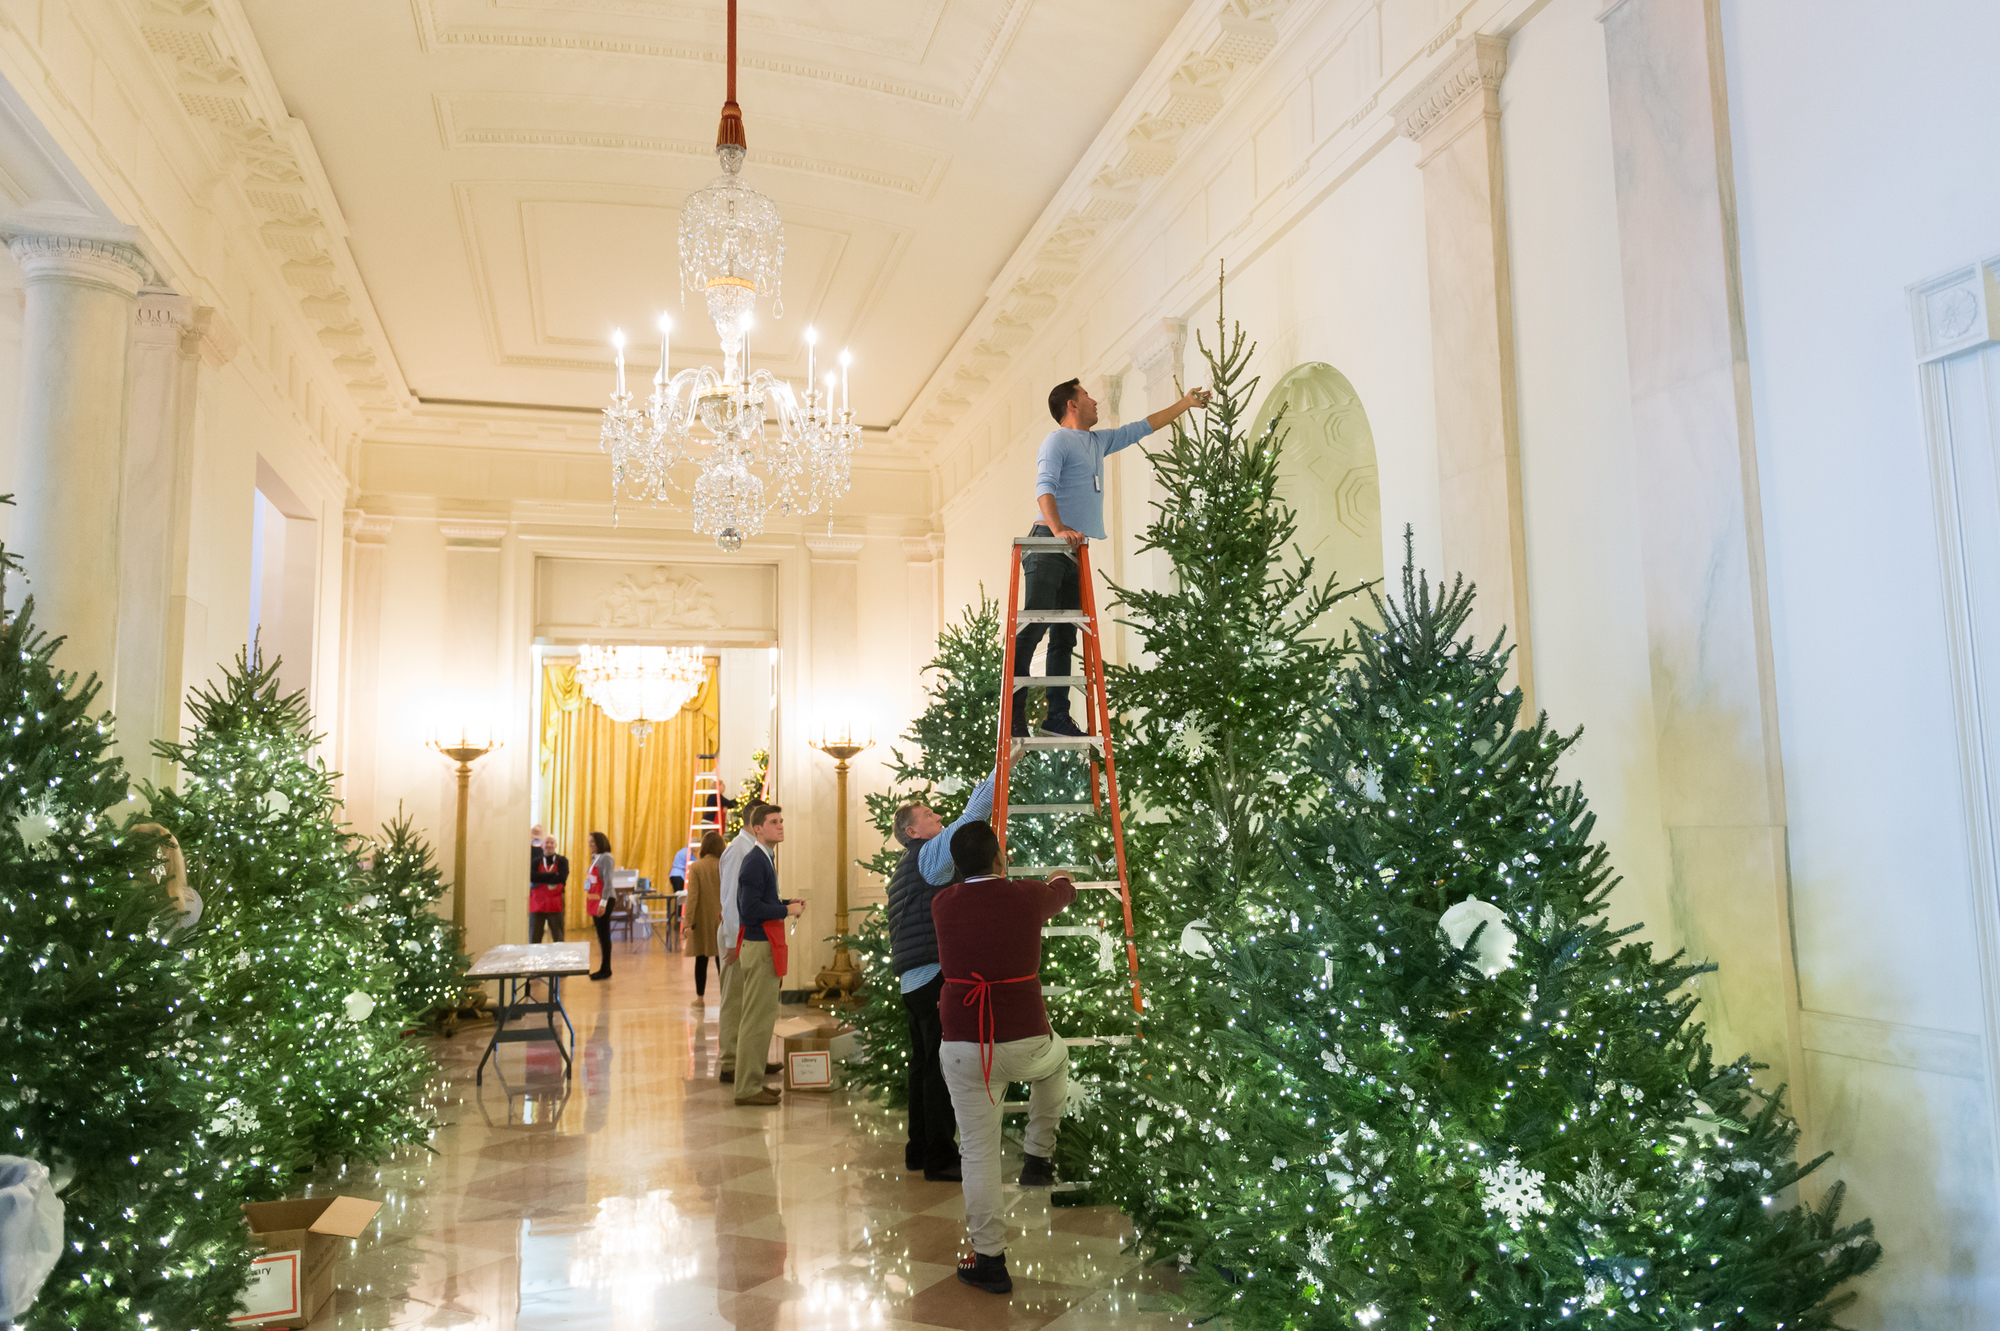 White House Christmas Ornaments - Best Things to Buy in Washington DC